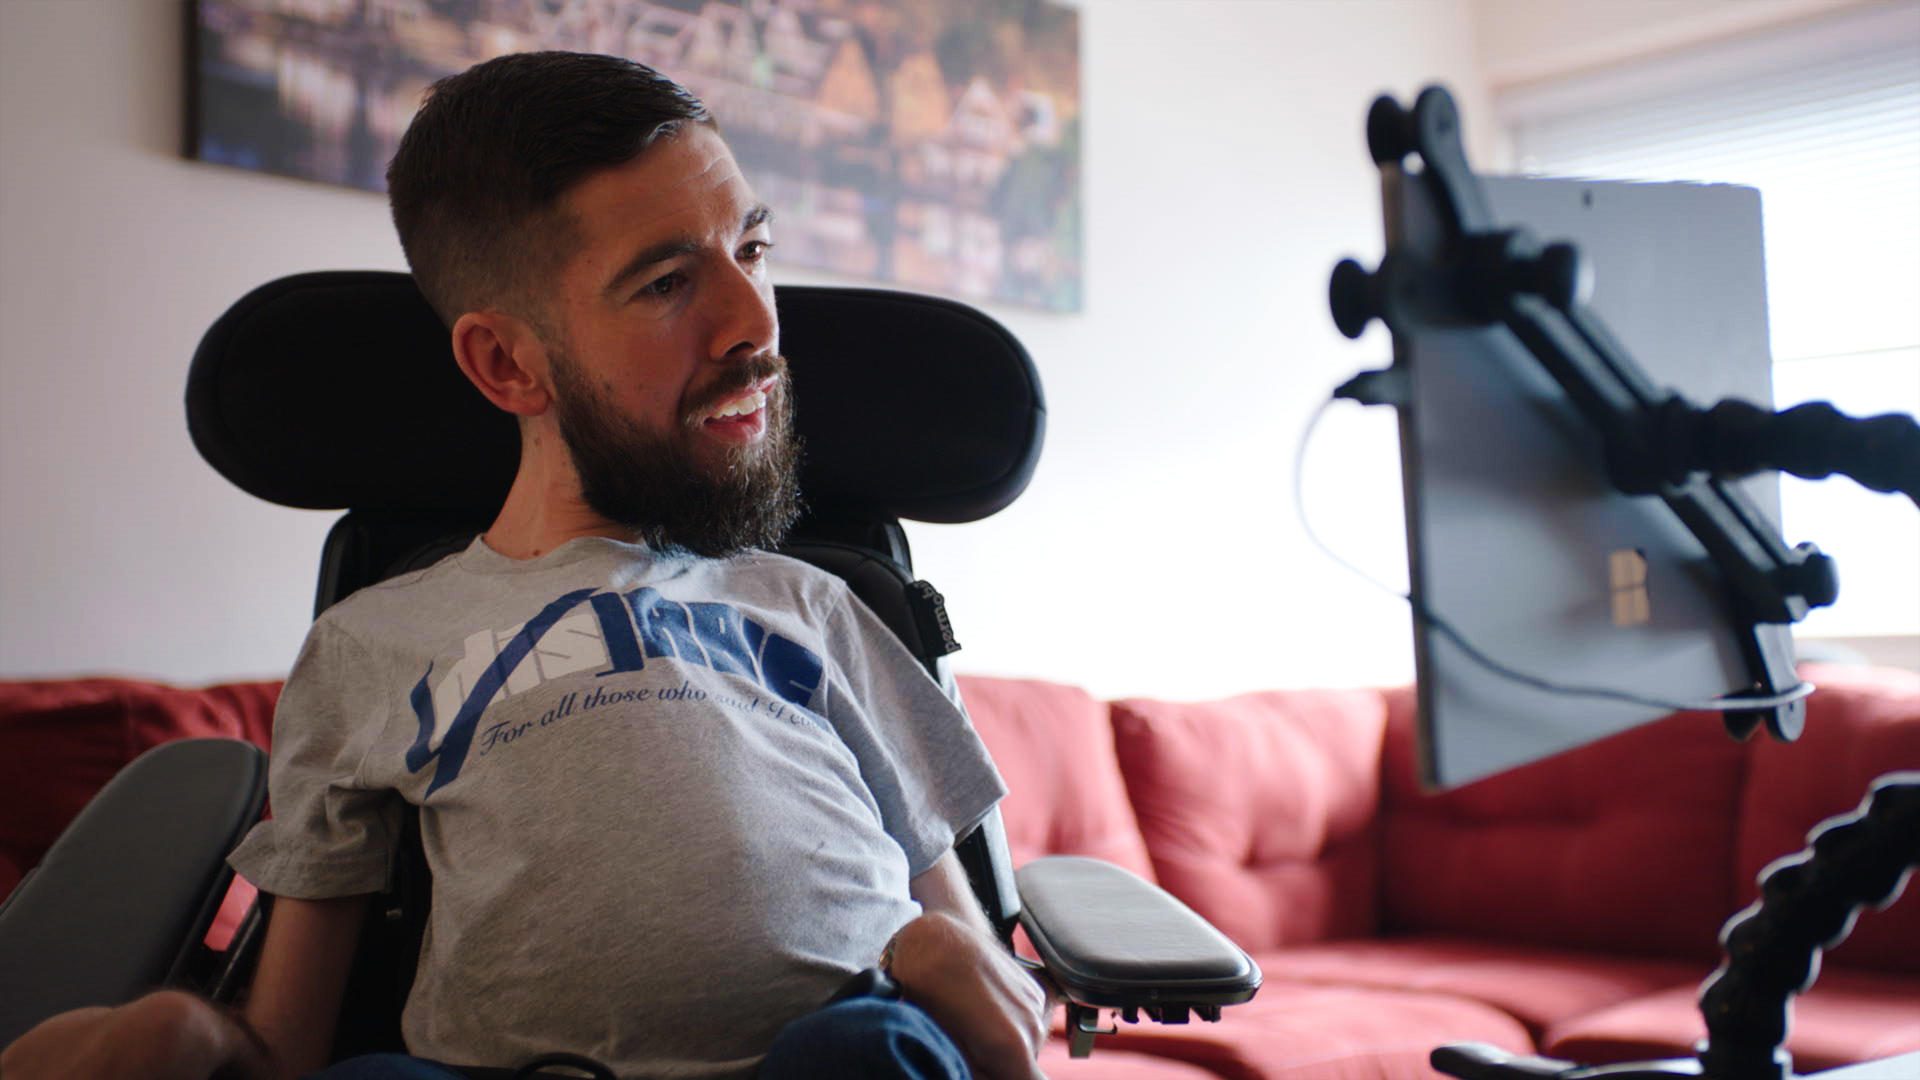 Jimmy Curran, who has spinal muscular atrophy, was one of the first to receive the new X1 eye control system.